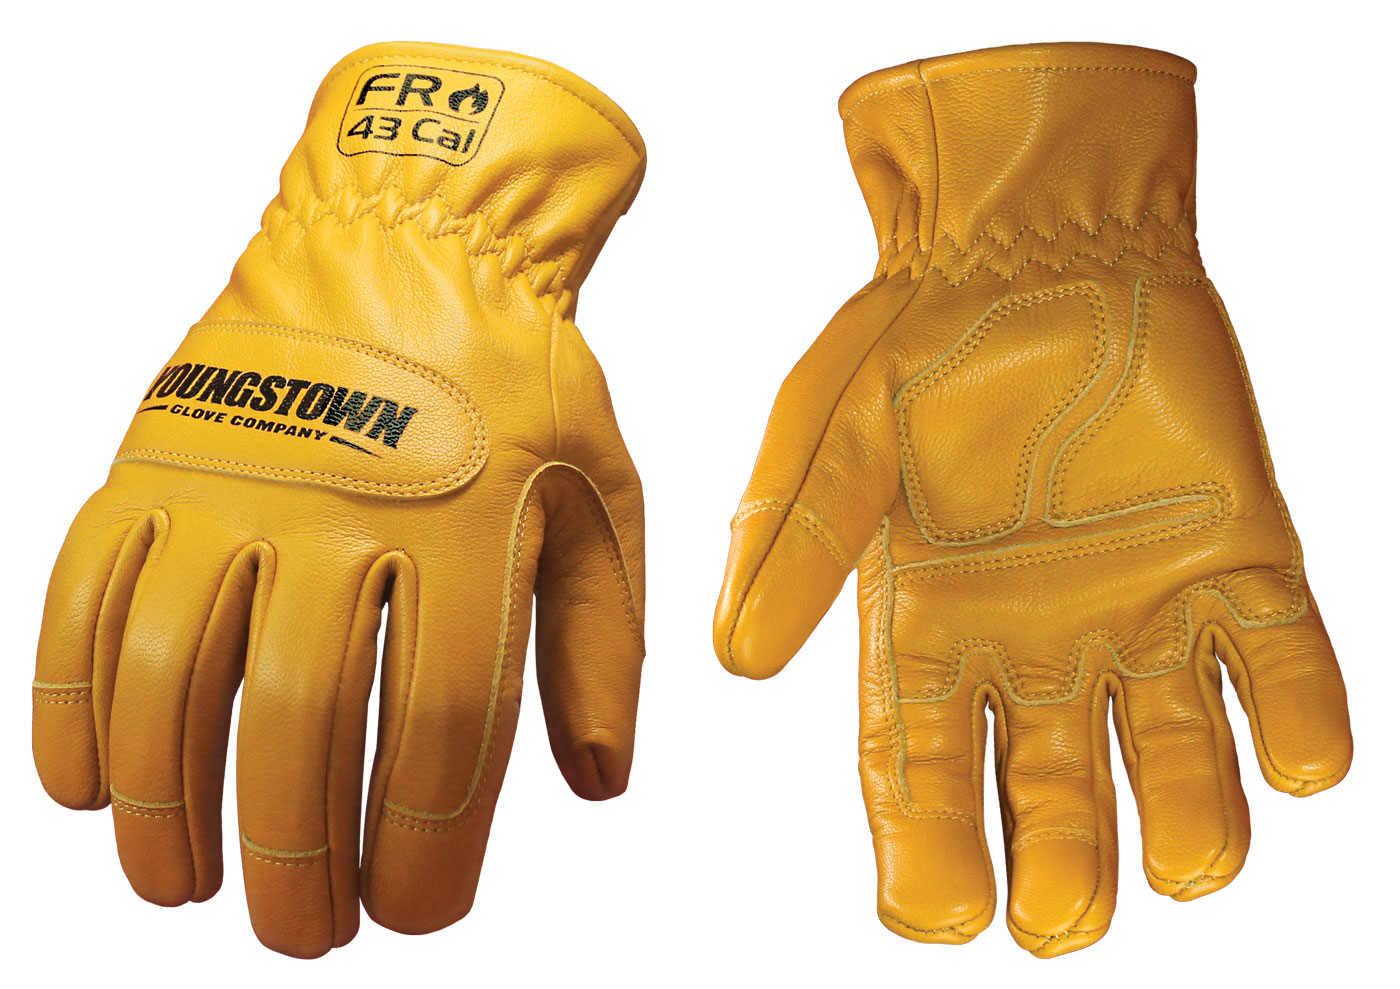 The FR Ground Glove Lined with Kevlar® 43 cal X-Large